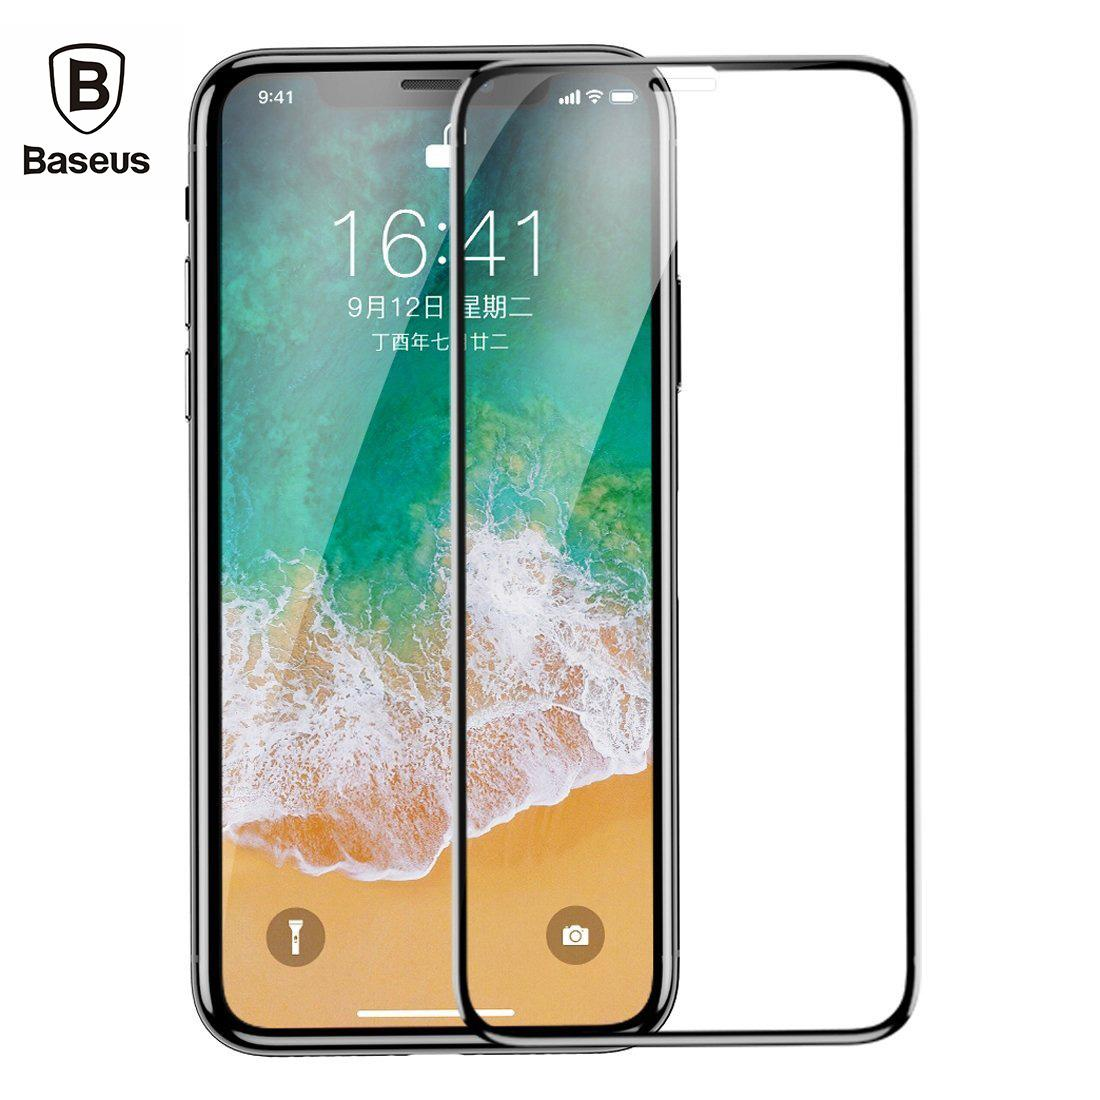 Buy Top Screen Protectors Mobiles Anti Gores Tempered Glass Huawei P10 Plus Nillkin H Pro 02mm Original Iphone X Xs Max Protector Baseus 03mm 9h Hardness